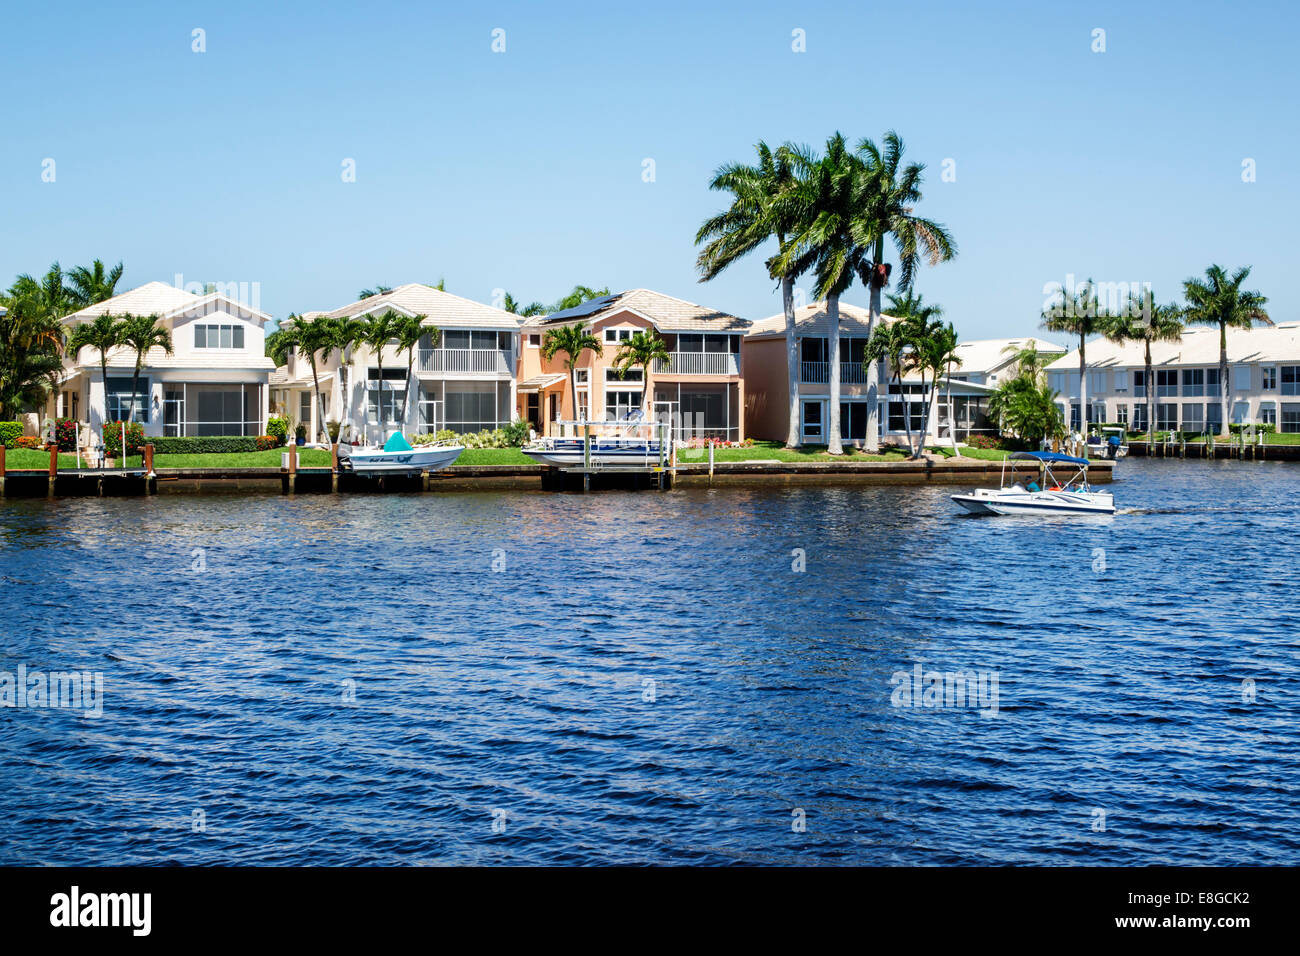 florida houses on the water. naples florida port of the islands resort everglades faka union canal water waterfront houses homes boats on